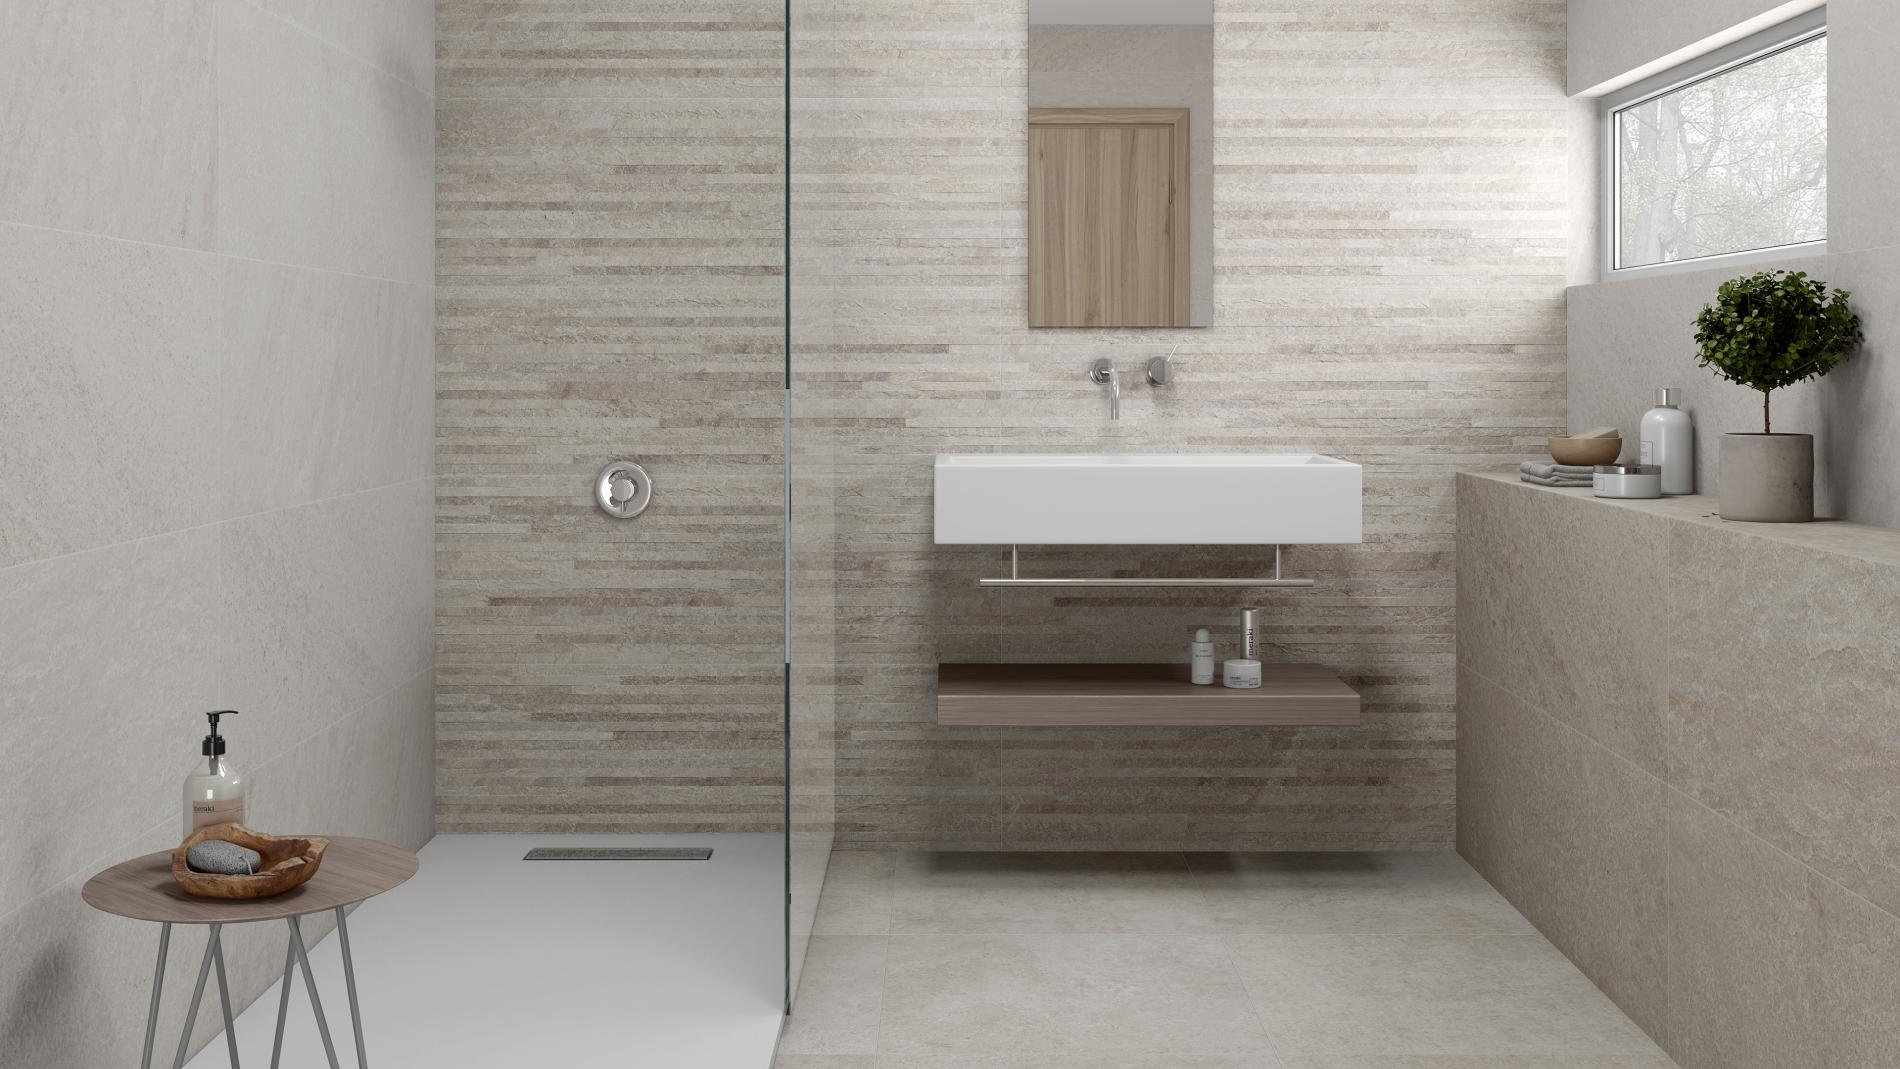 pam1900x744 Tiles dublin waterloo bathrooms commercial contracts ireland supply and fit luxury.jpg